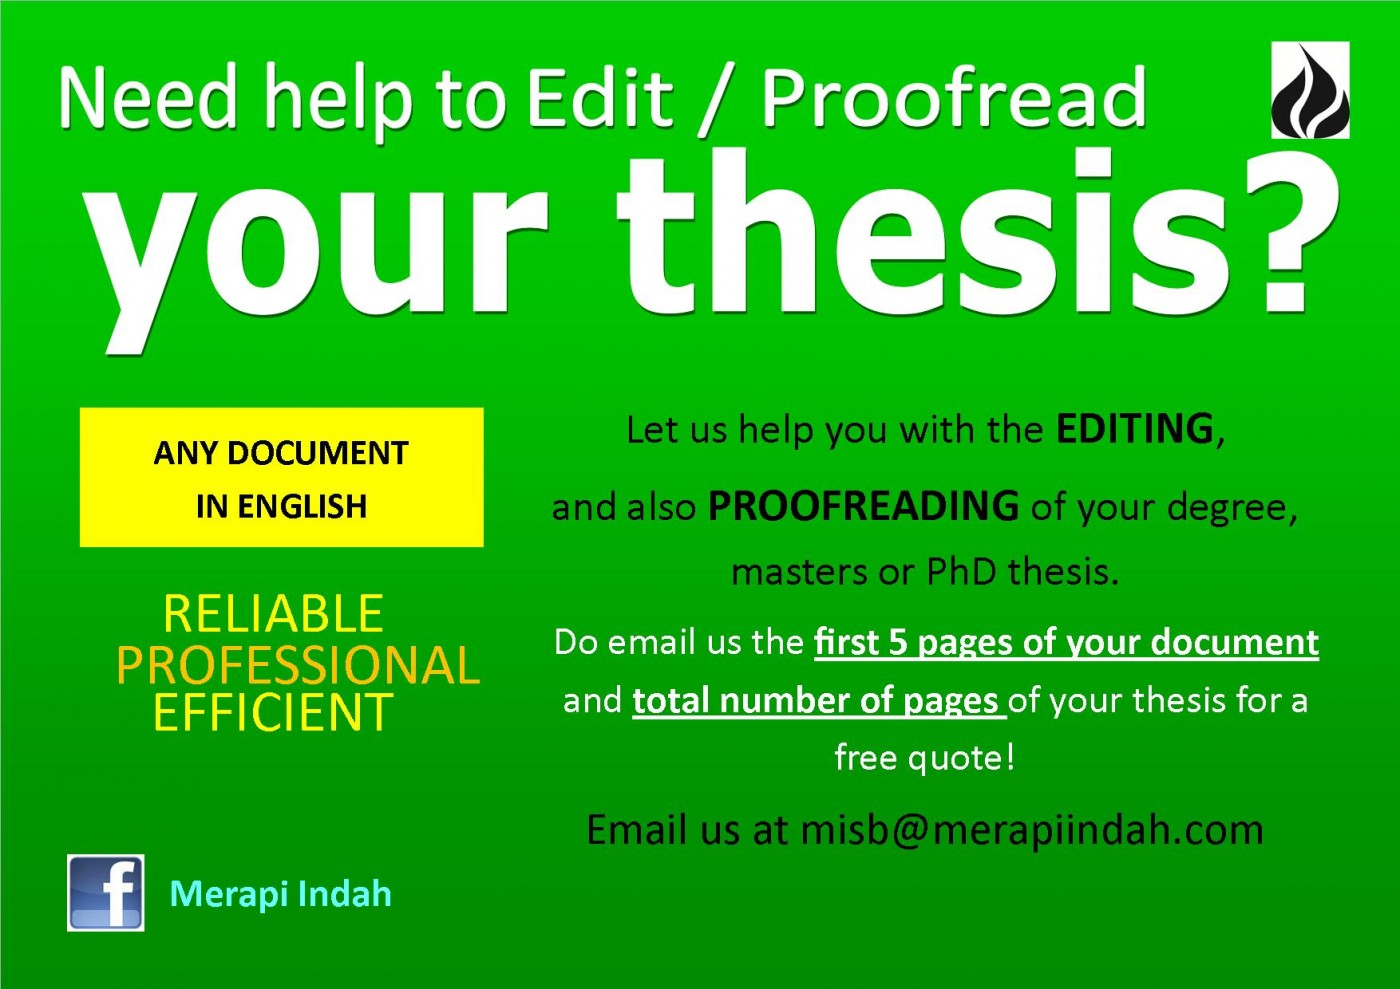 002 Essay Editing Service Misb Proofreading Flyer Thesis Impressive Free Best Admission 1400